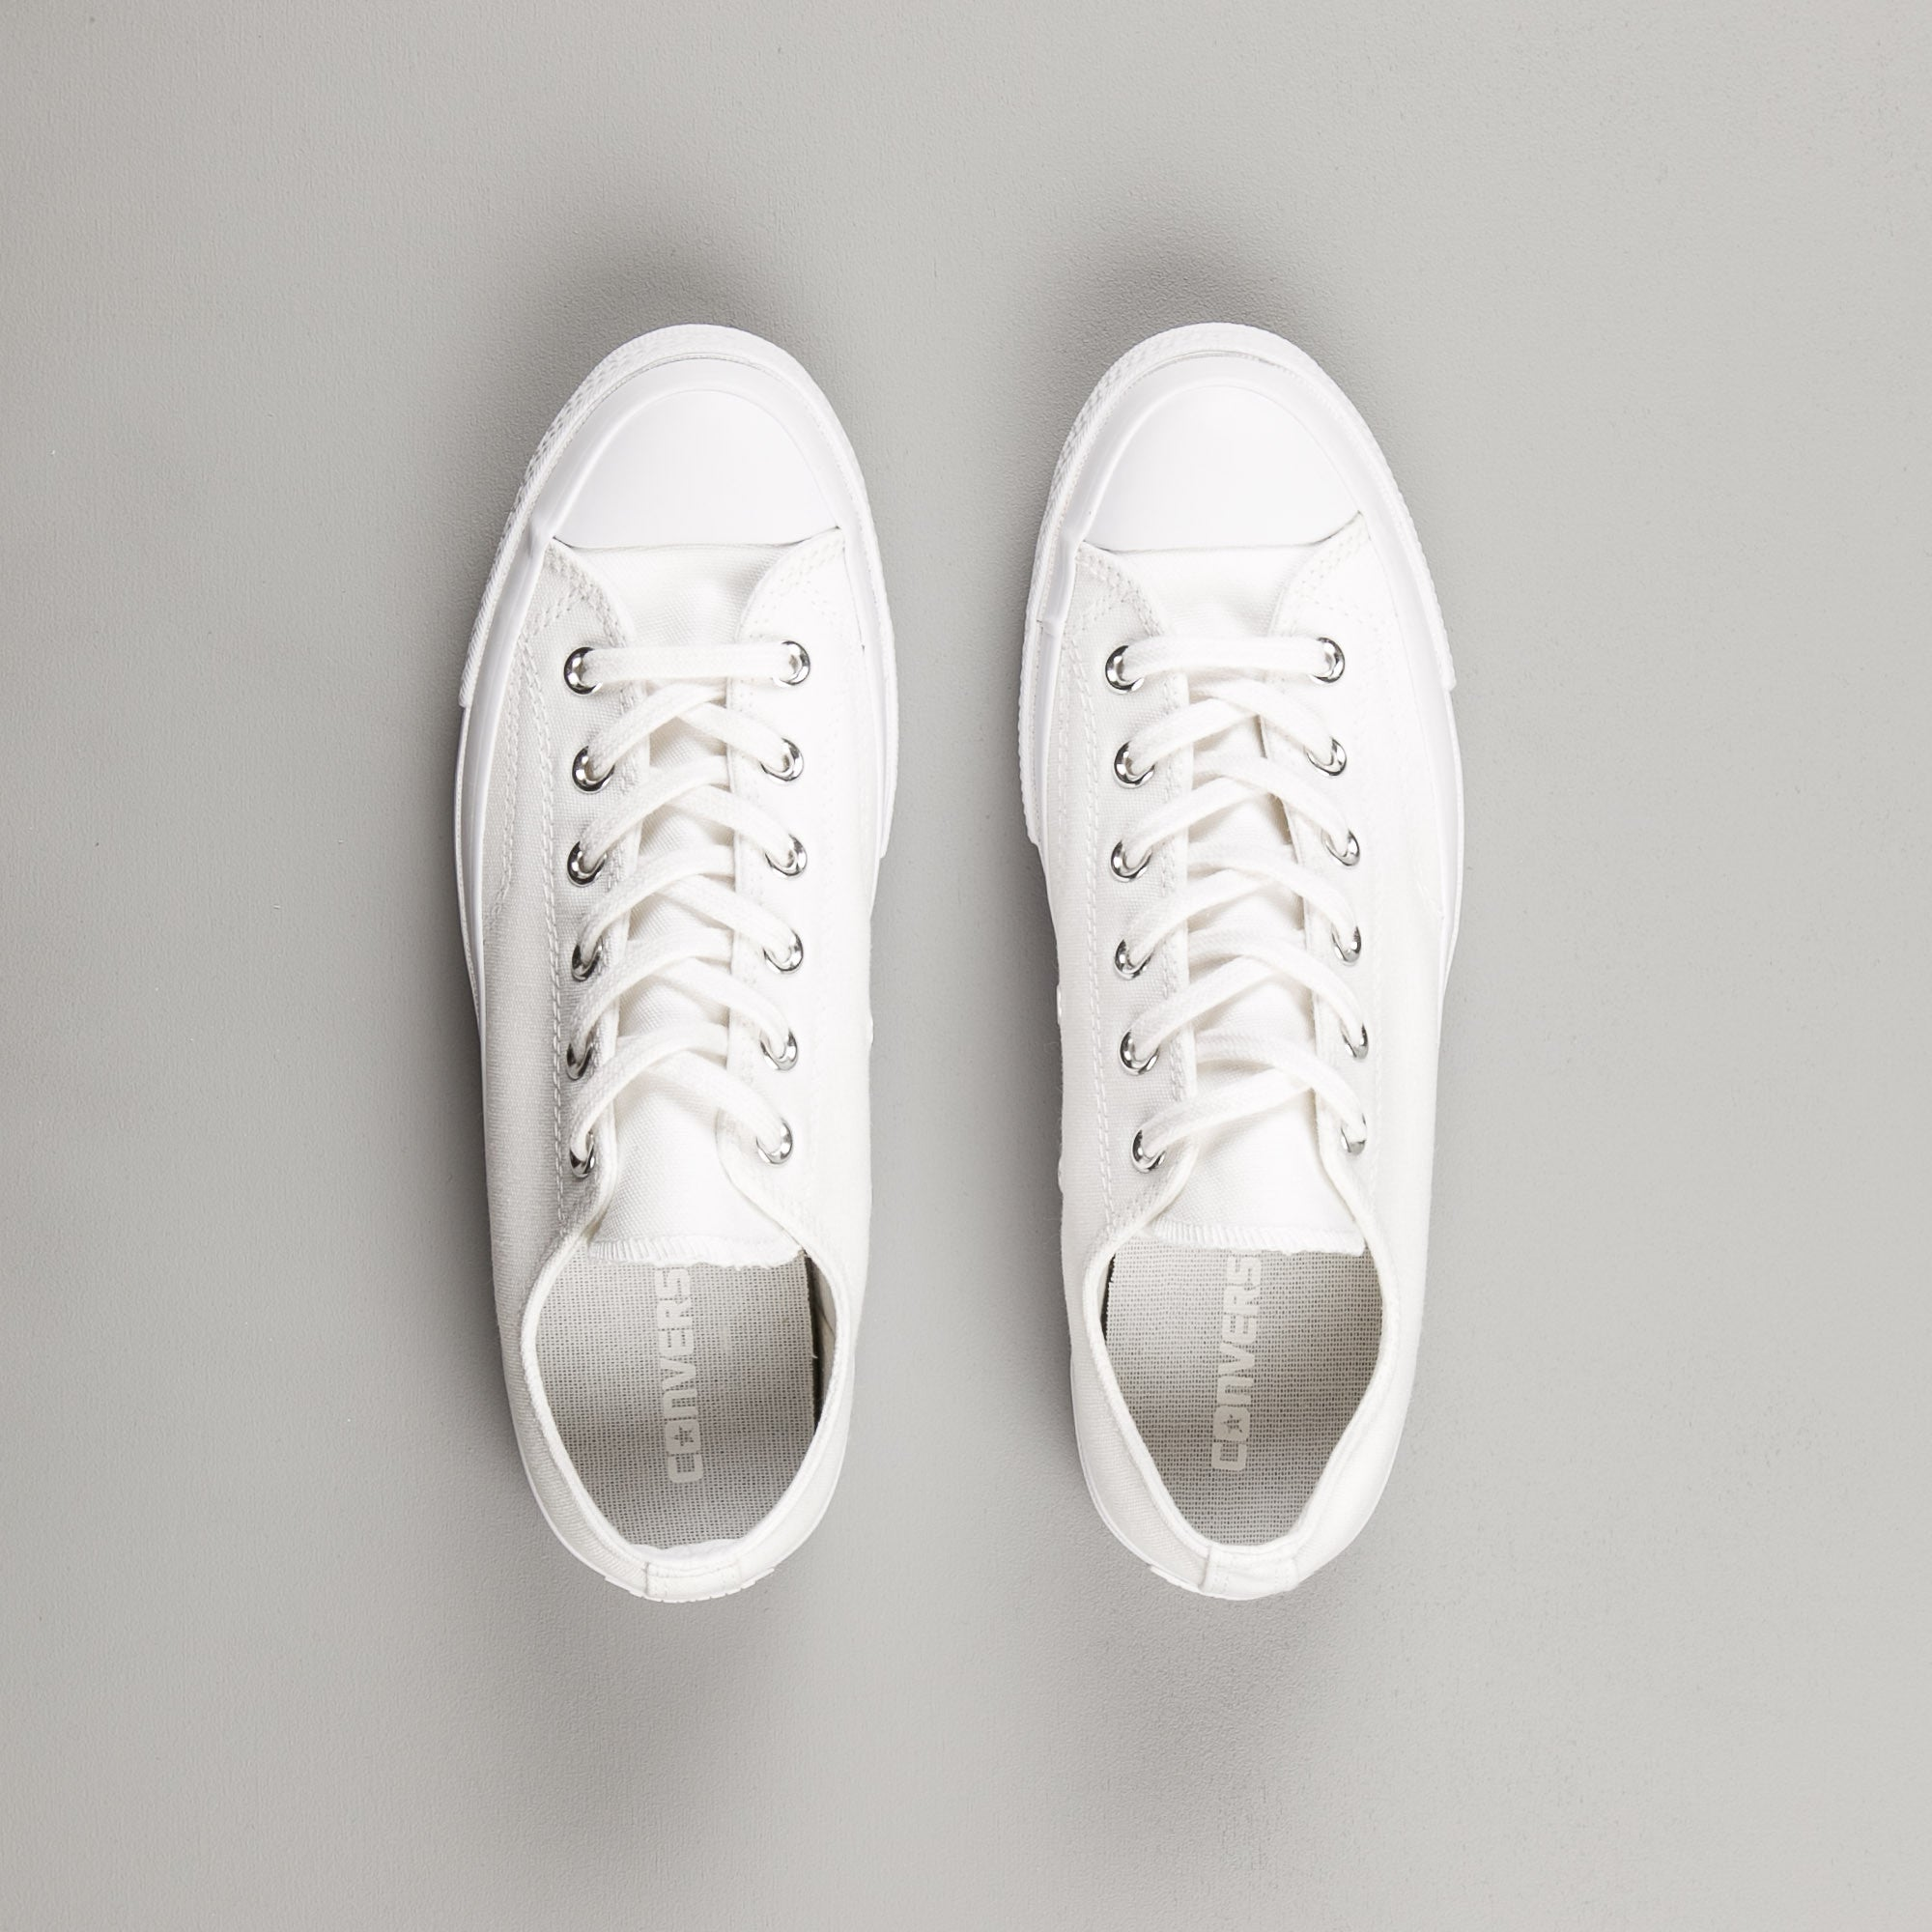 Converse CTAS 70 OX Shoes - White Monochrome